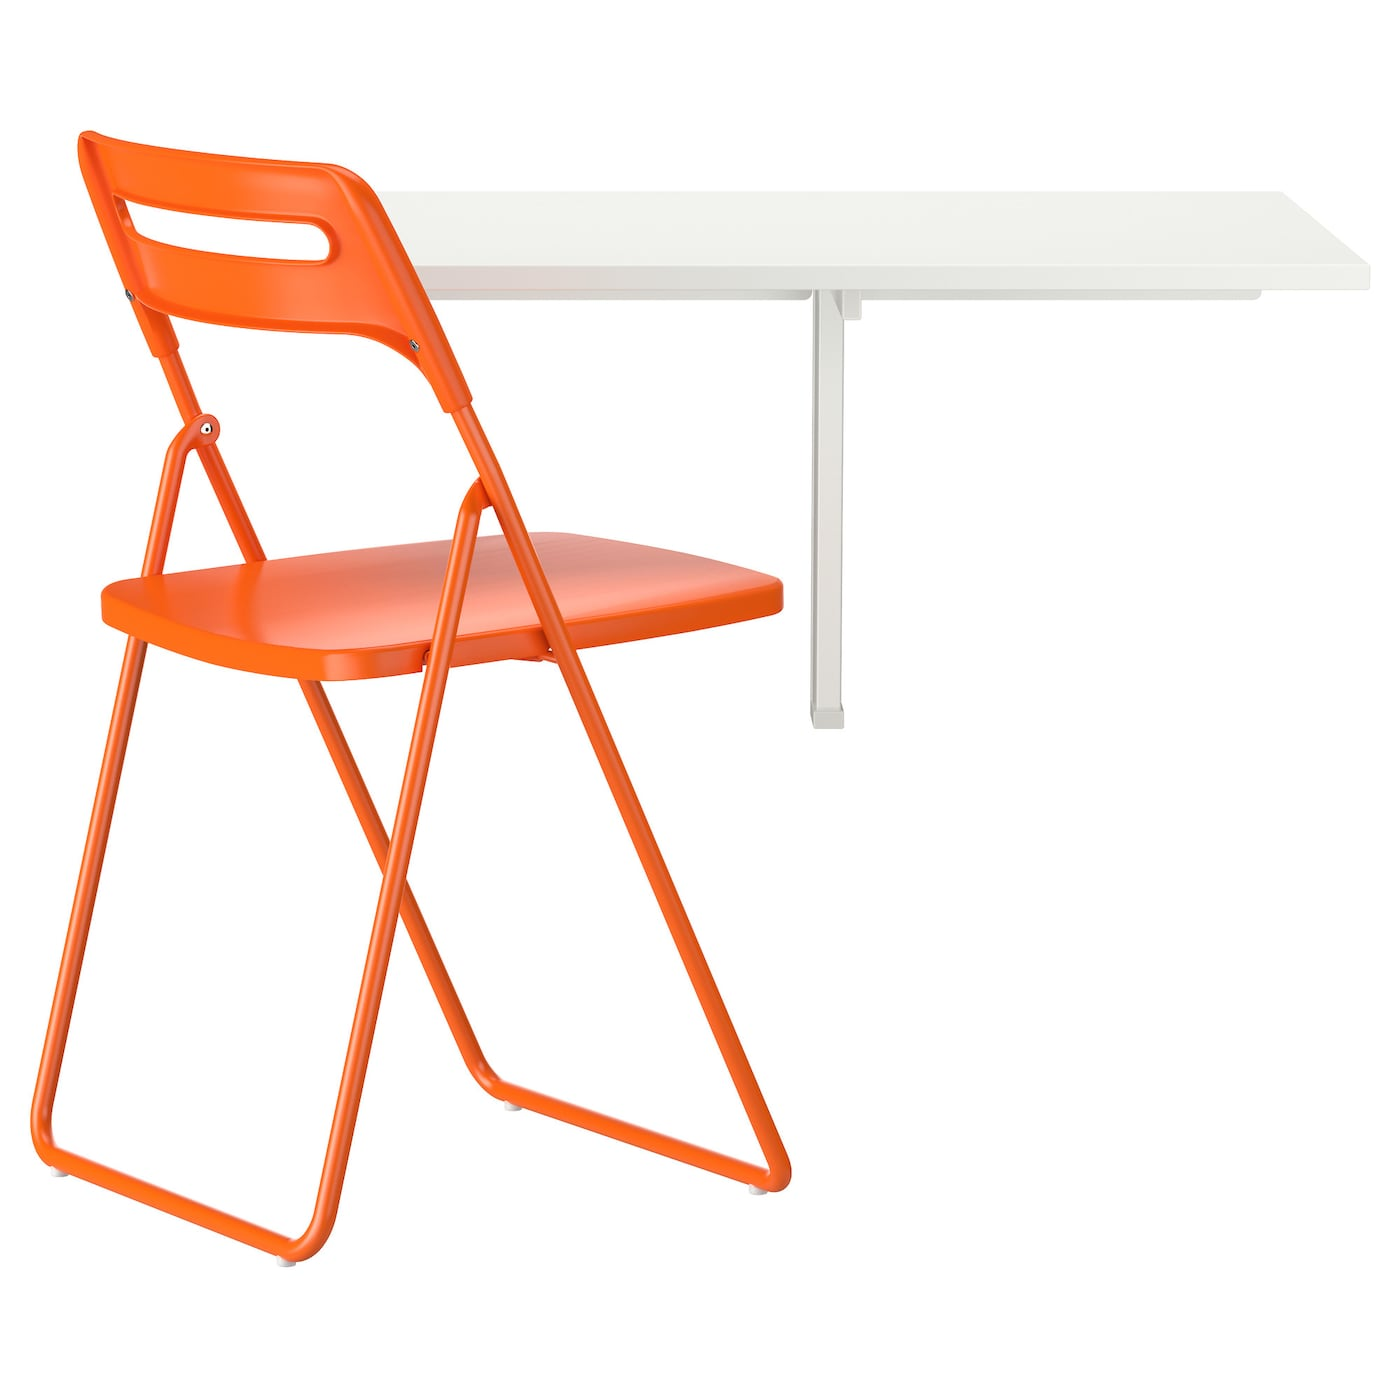 Nisse norberg table et 1 chaise blanc orange 74 cm ikea for Table et chaise ikea